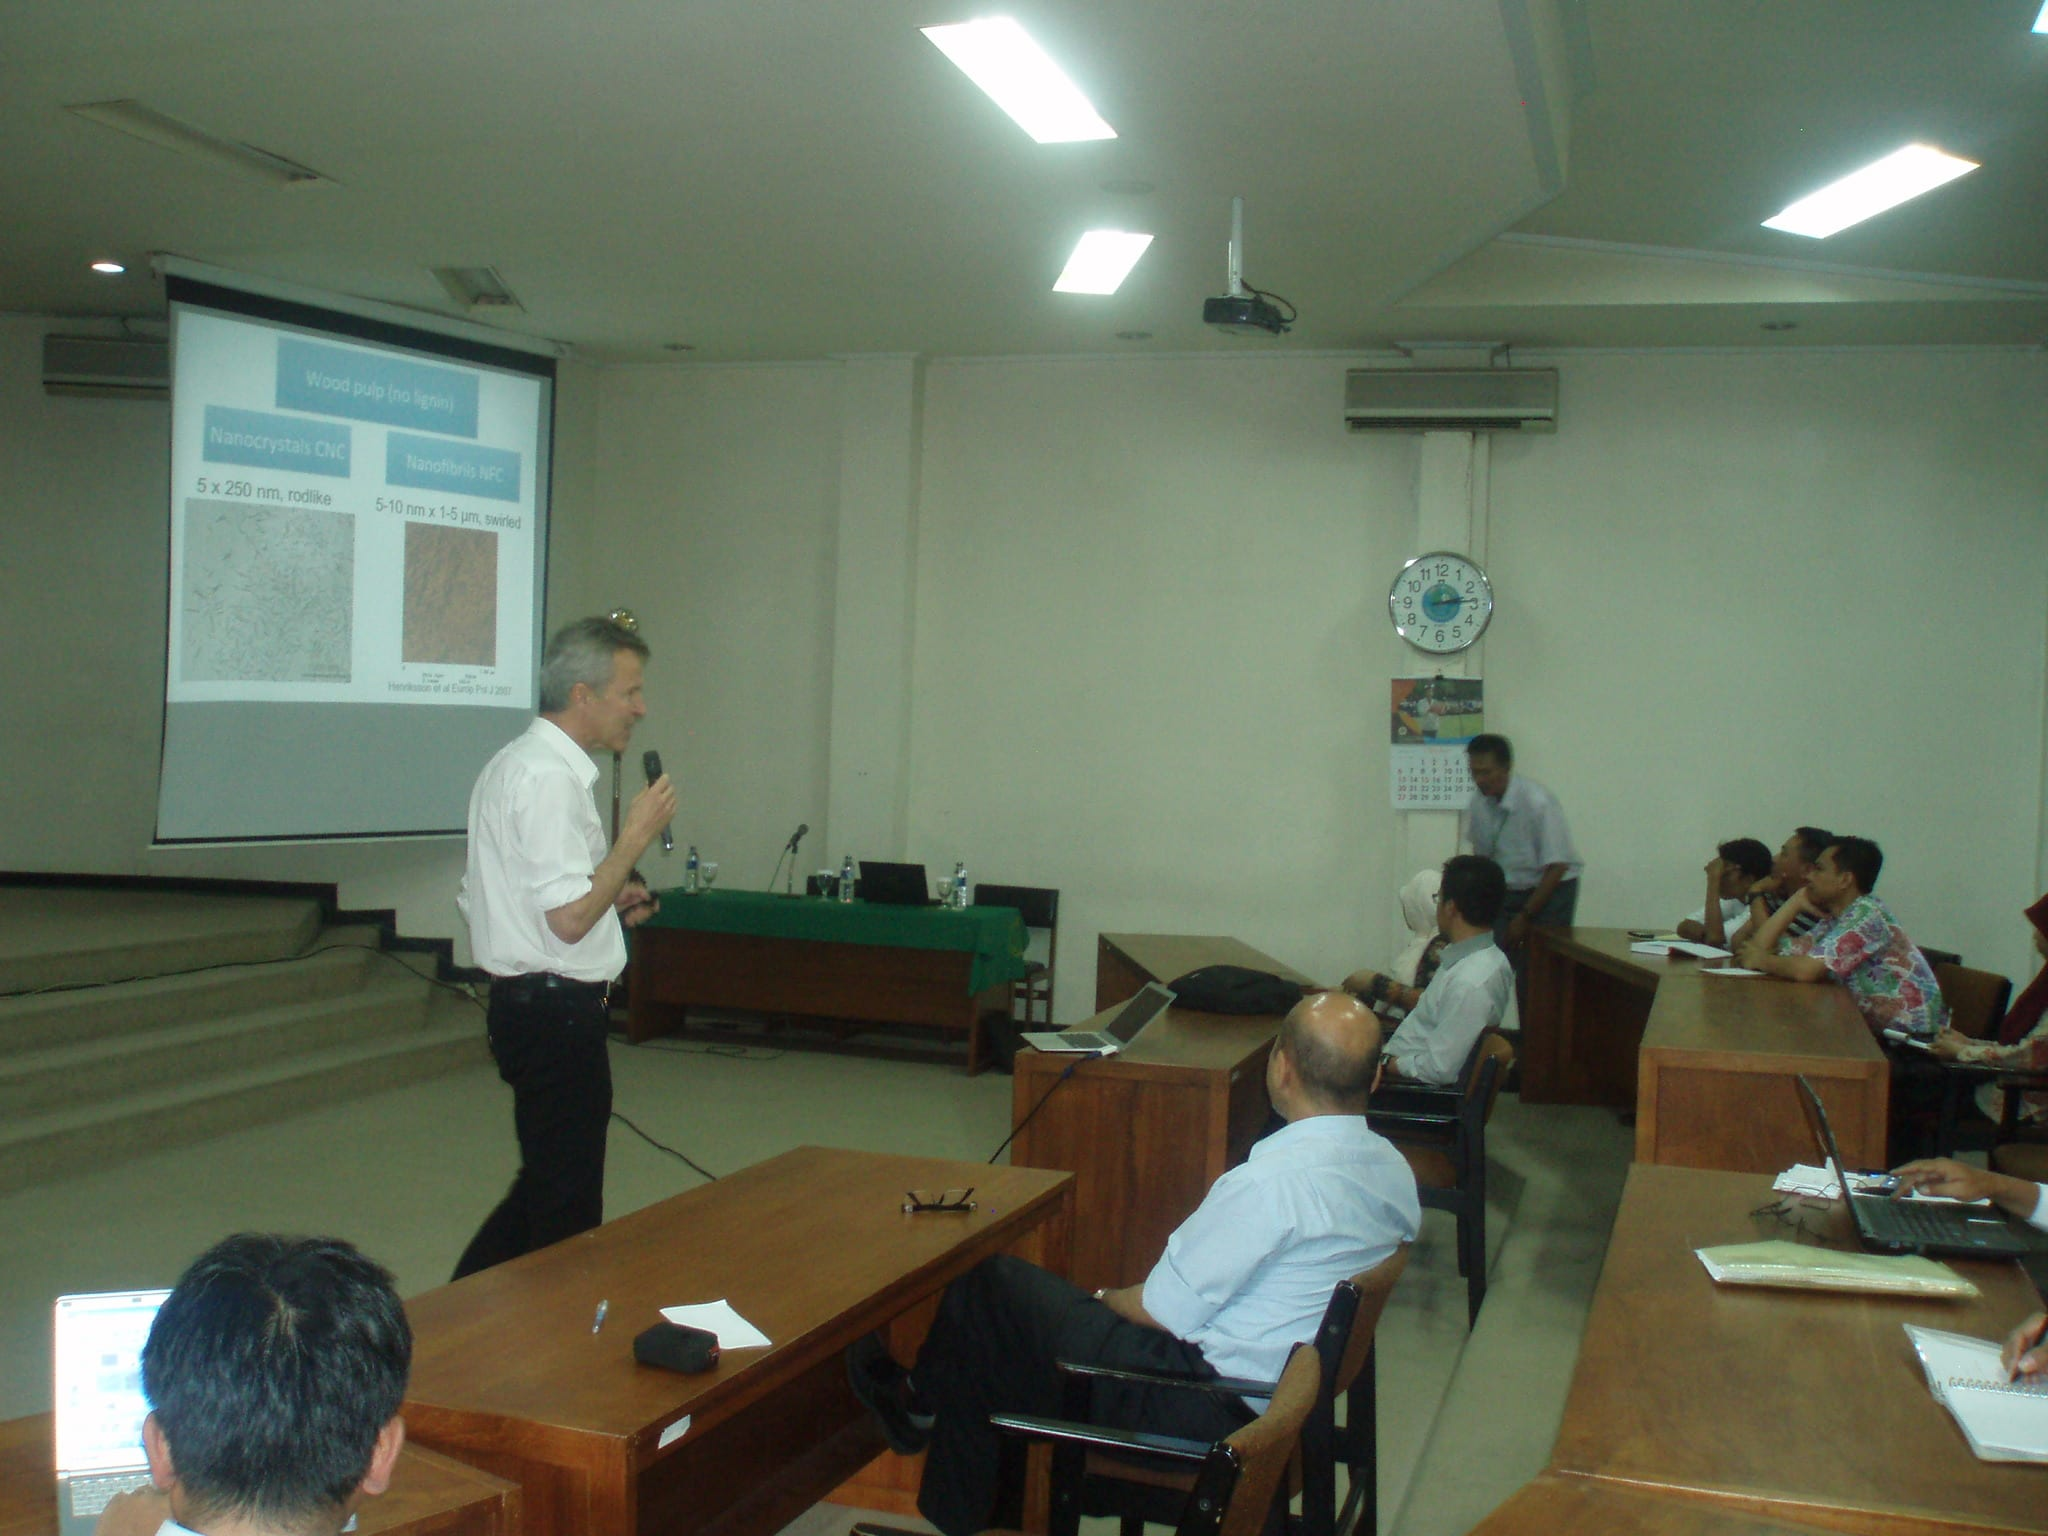 General lecture of nano-composite technology by Prof. Lars Berglund (Royal Institute of Technology, Swedia)